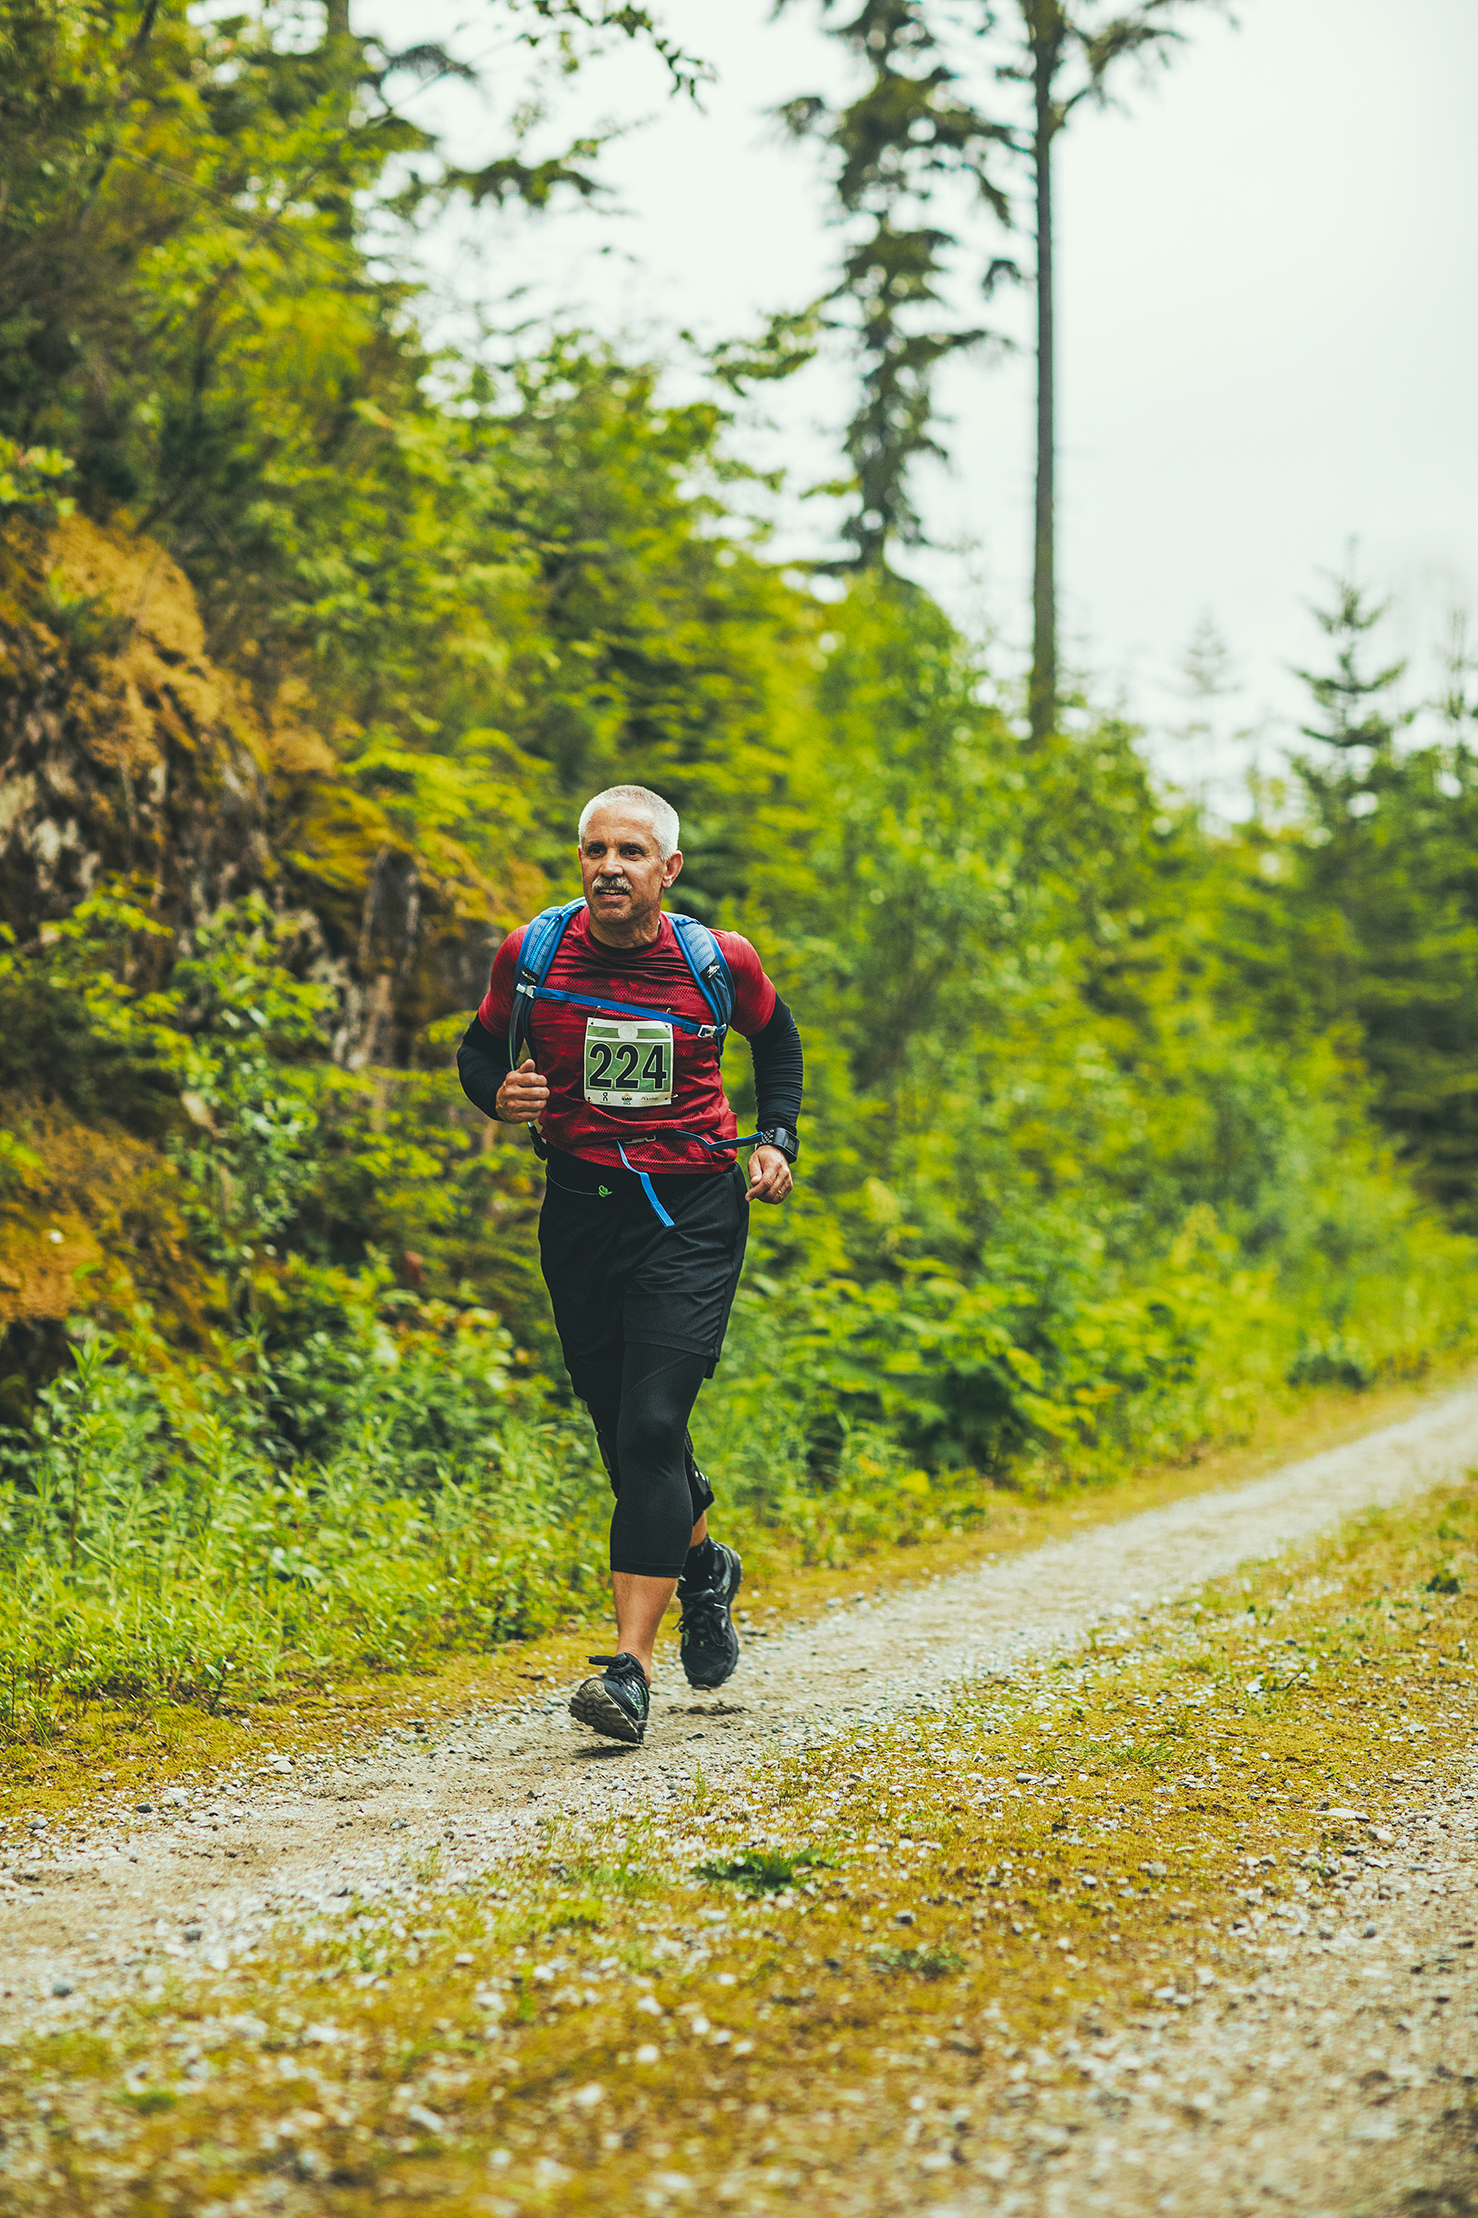 Fraser Valley Trail Races - Bear Mountain - IMG_1741 by Brice Ferre Studio - Vancouver Portrait Adventure and Athlete Photographer.jpg